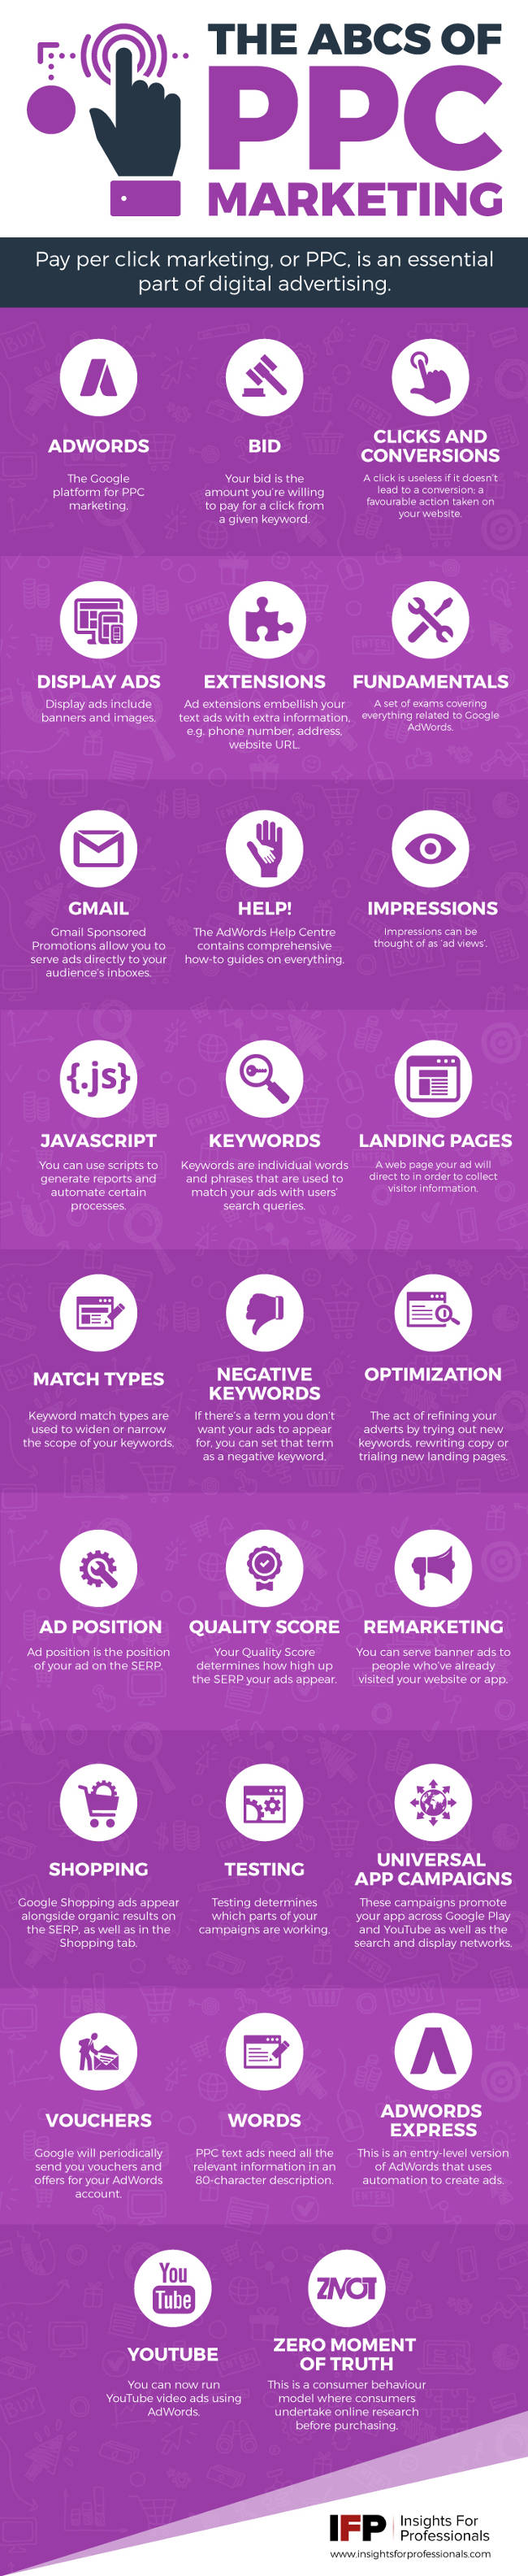 The ABCs of Pay Per Click Marketing [Infographic]